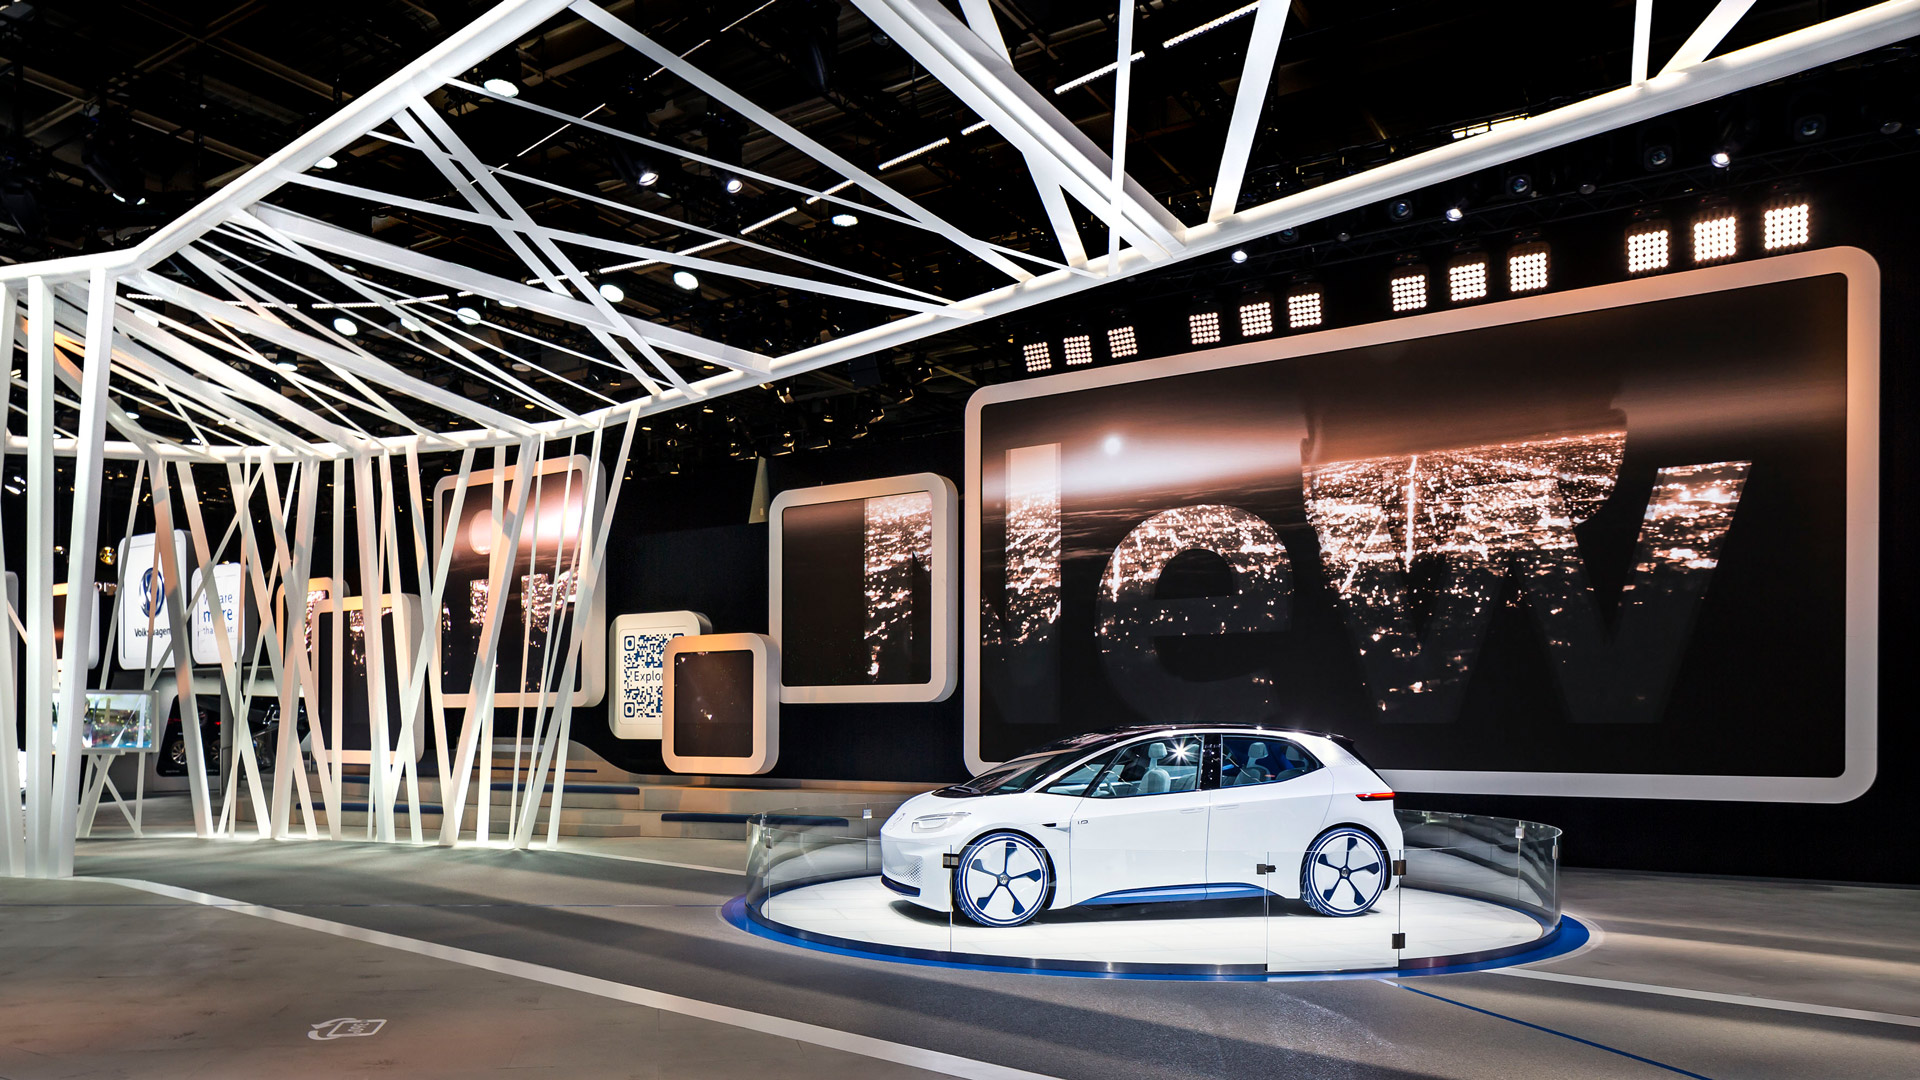 The picture shows the concept car of Volkswagen, which stands separated in front of a big screen.